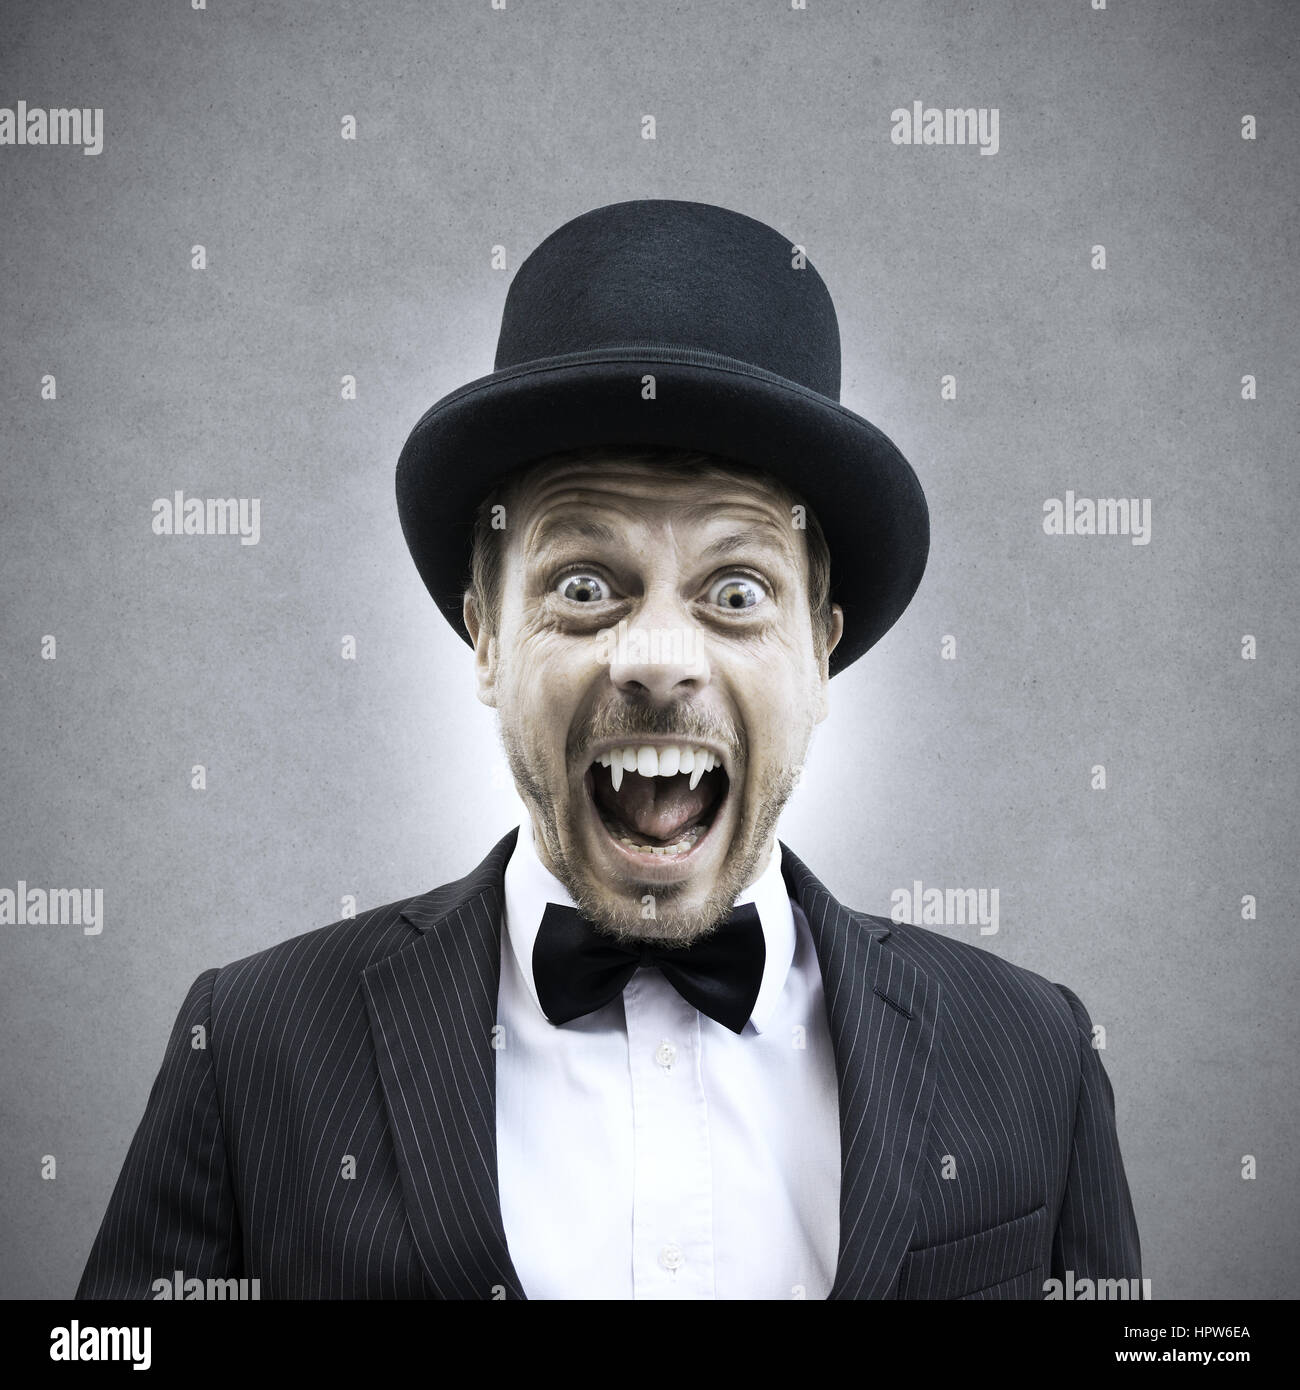 Scary vampire businessman screaming and showing fangs in vintage elegant outfit. Stock Photo